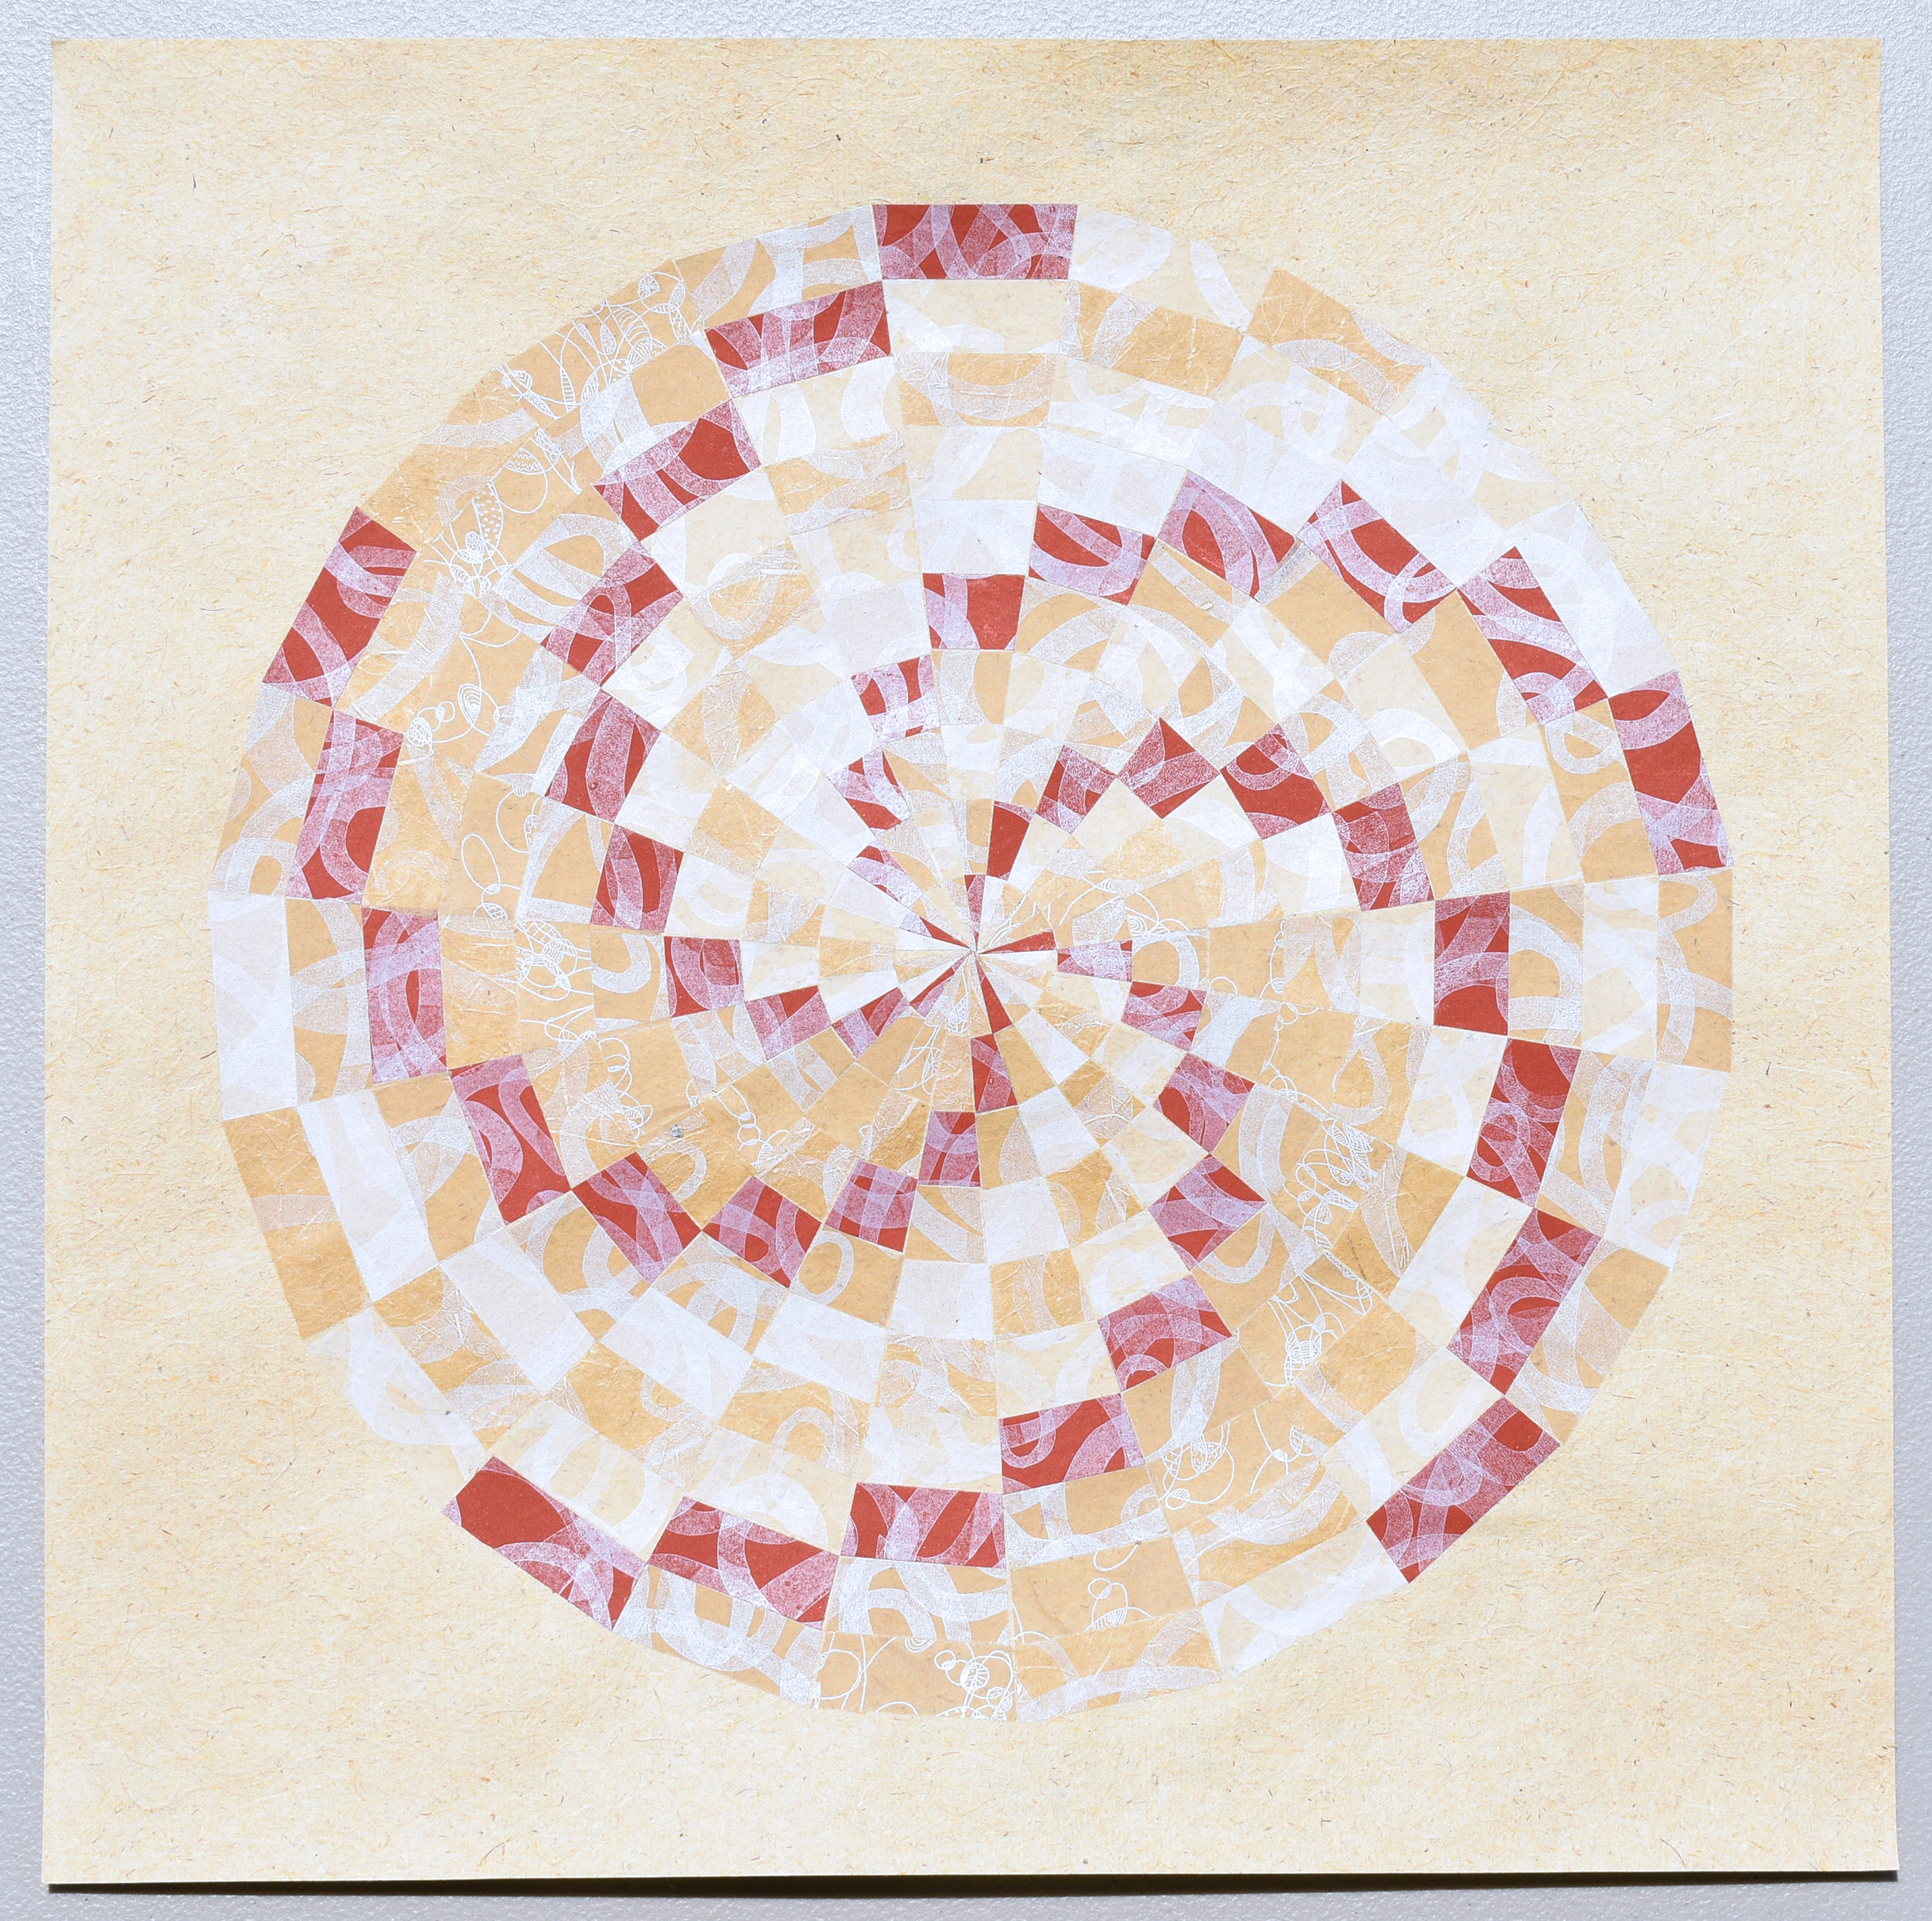 "Suzanne Sawyer   Revolution Quilt  Letterpress printed handmade paper, including abaca, flax, and other plant fibers  16x16""  2019"